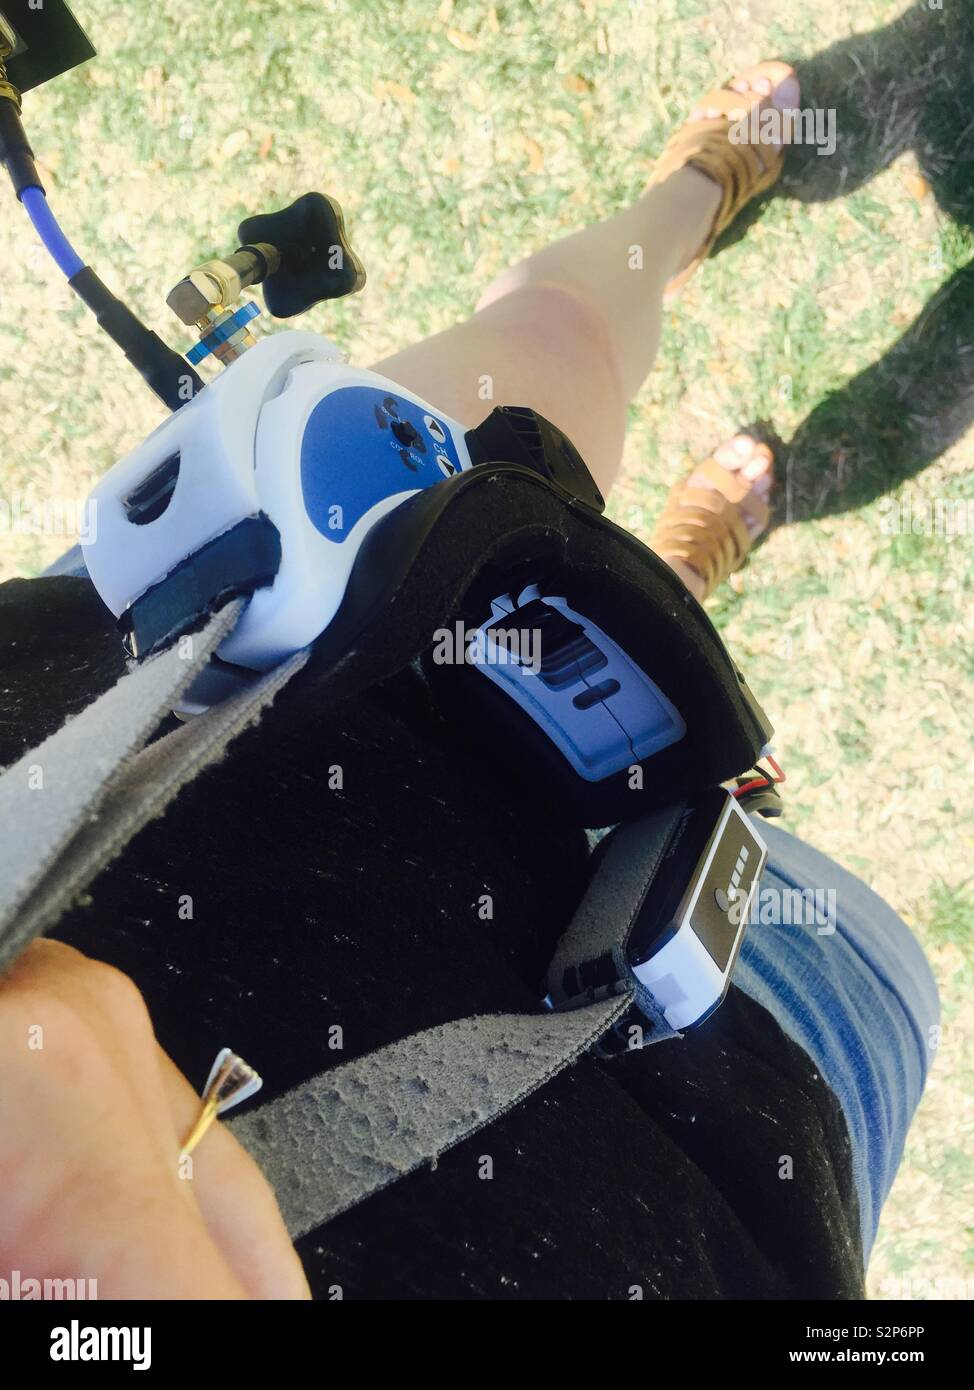 Flying Fpv with my goggles - Stock Image